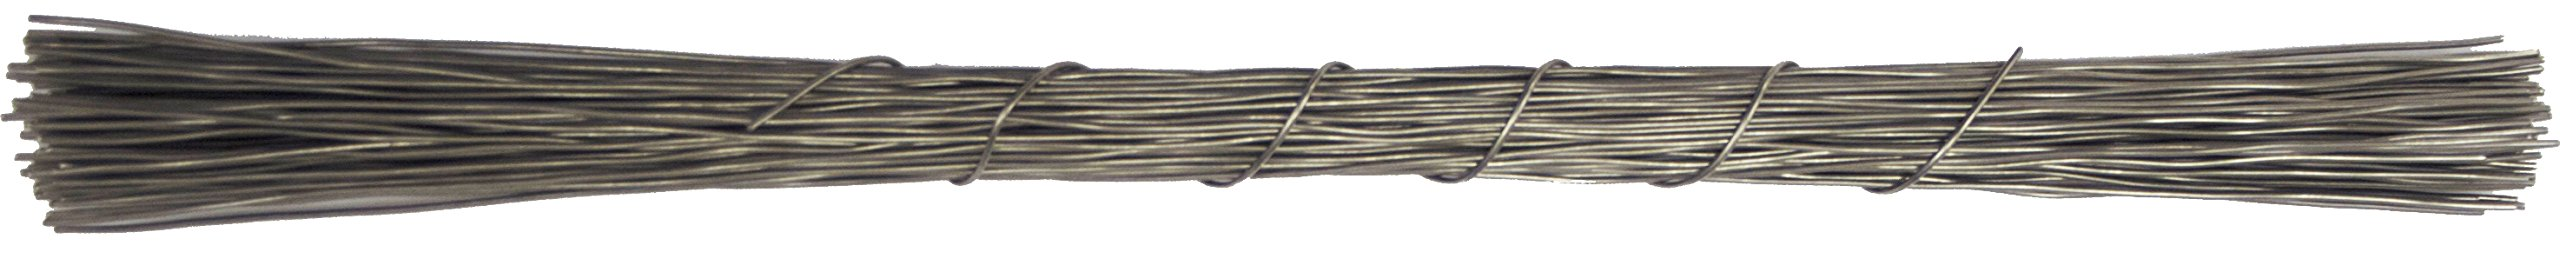 12'' inch Galvanized Steel Wires (Pack of 100) by National Band & Tag Company